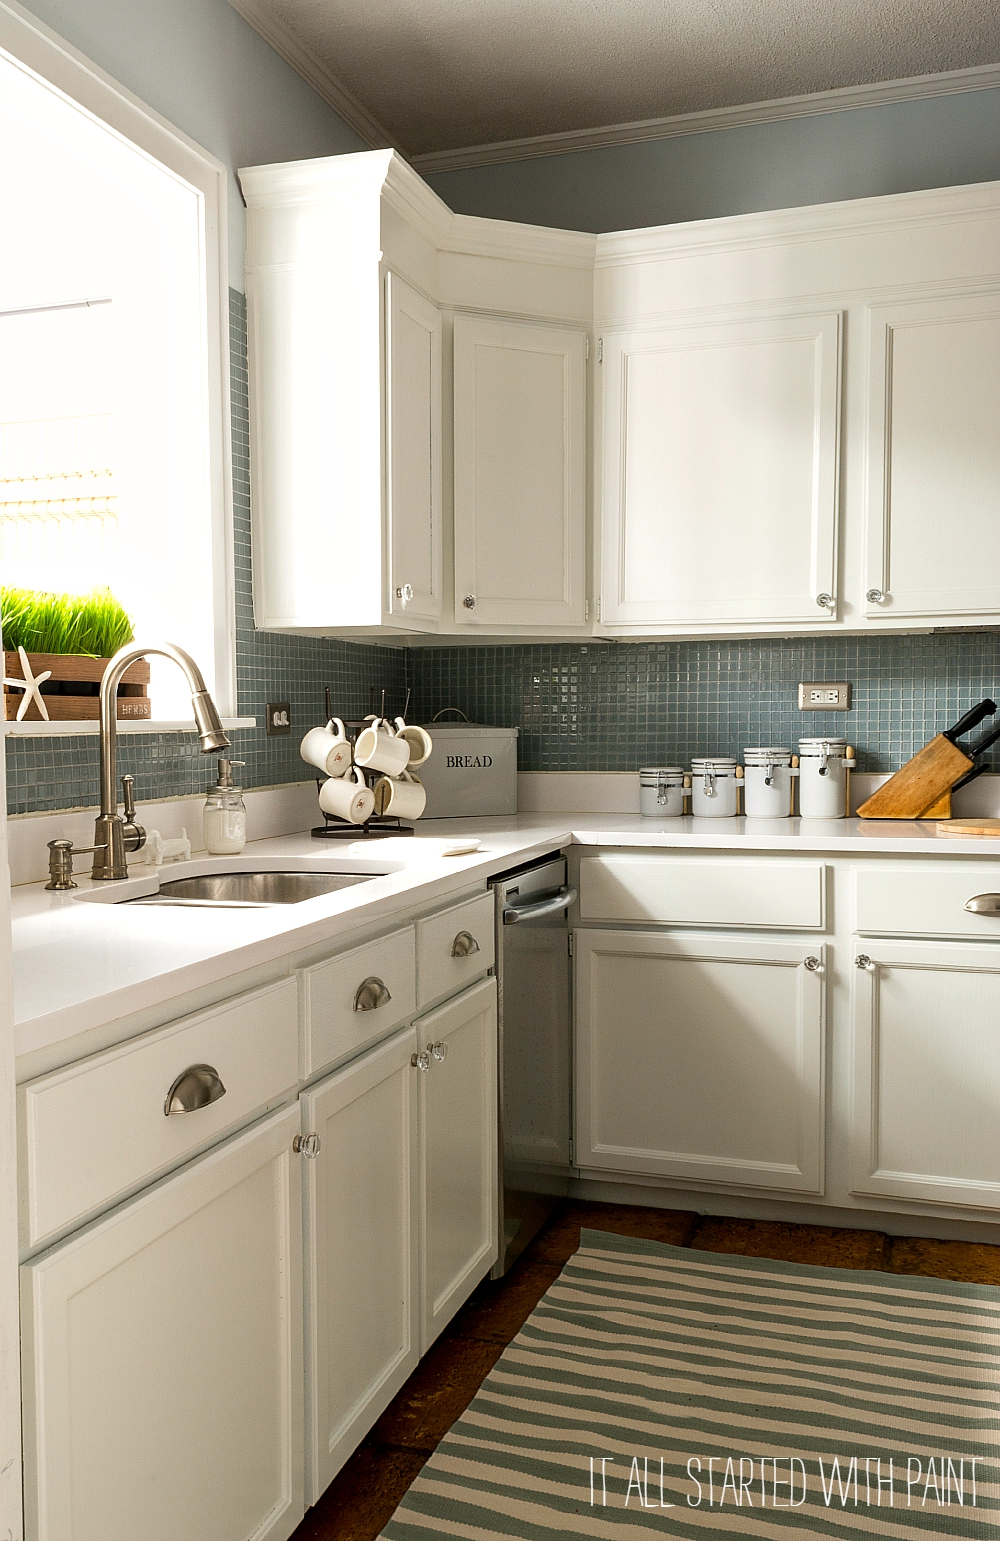 Builder Grade Kitchen Makeover With White Paint - Grey and white painted kitchen cabinets